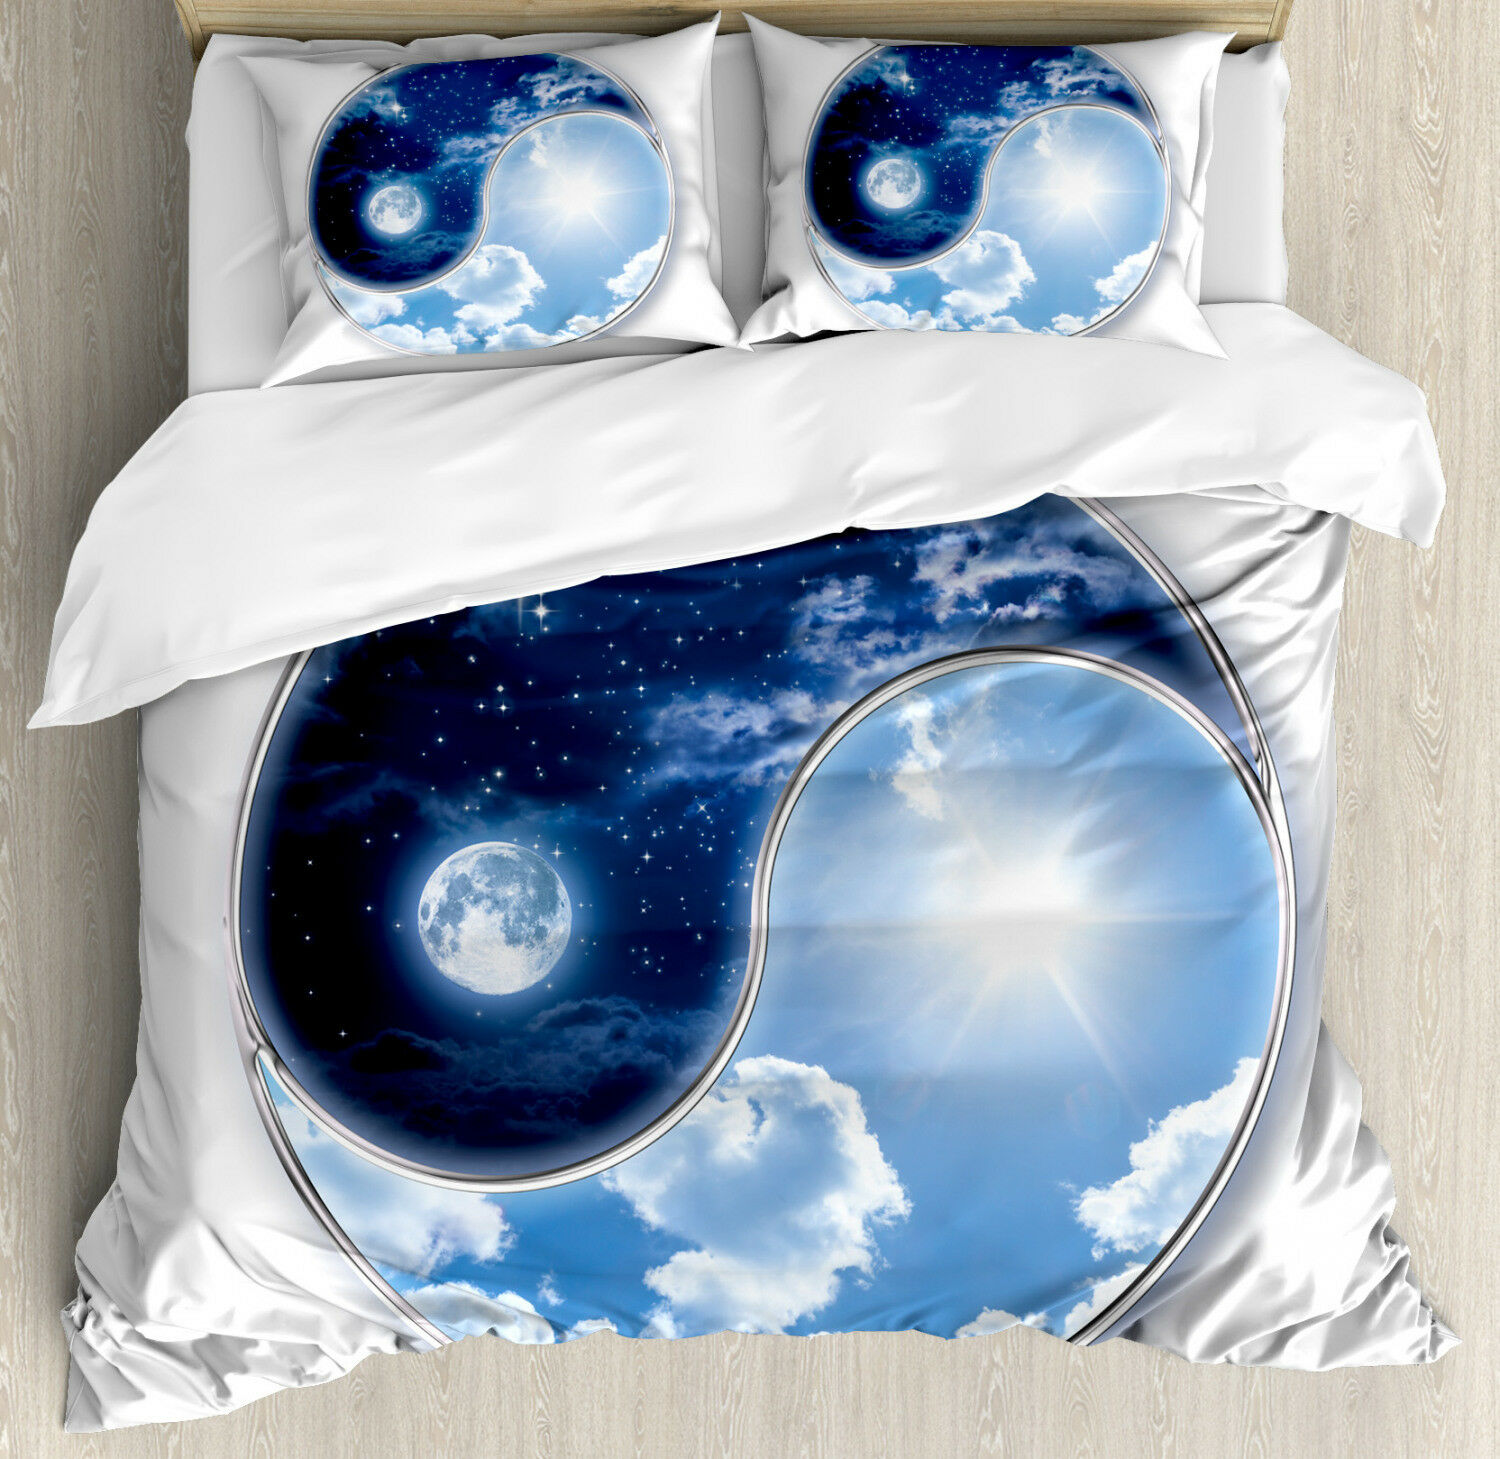 Space Duvet Cover Set with Pillow Shams Moon and Sun Figures Print